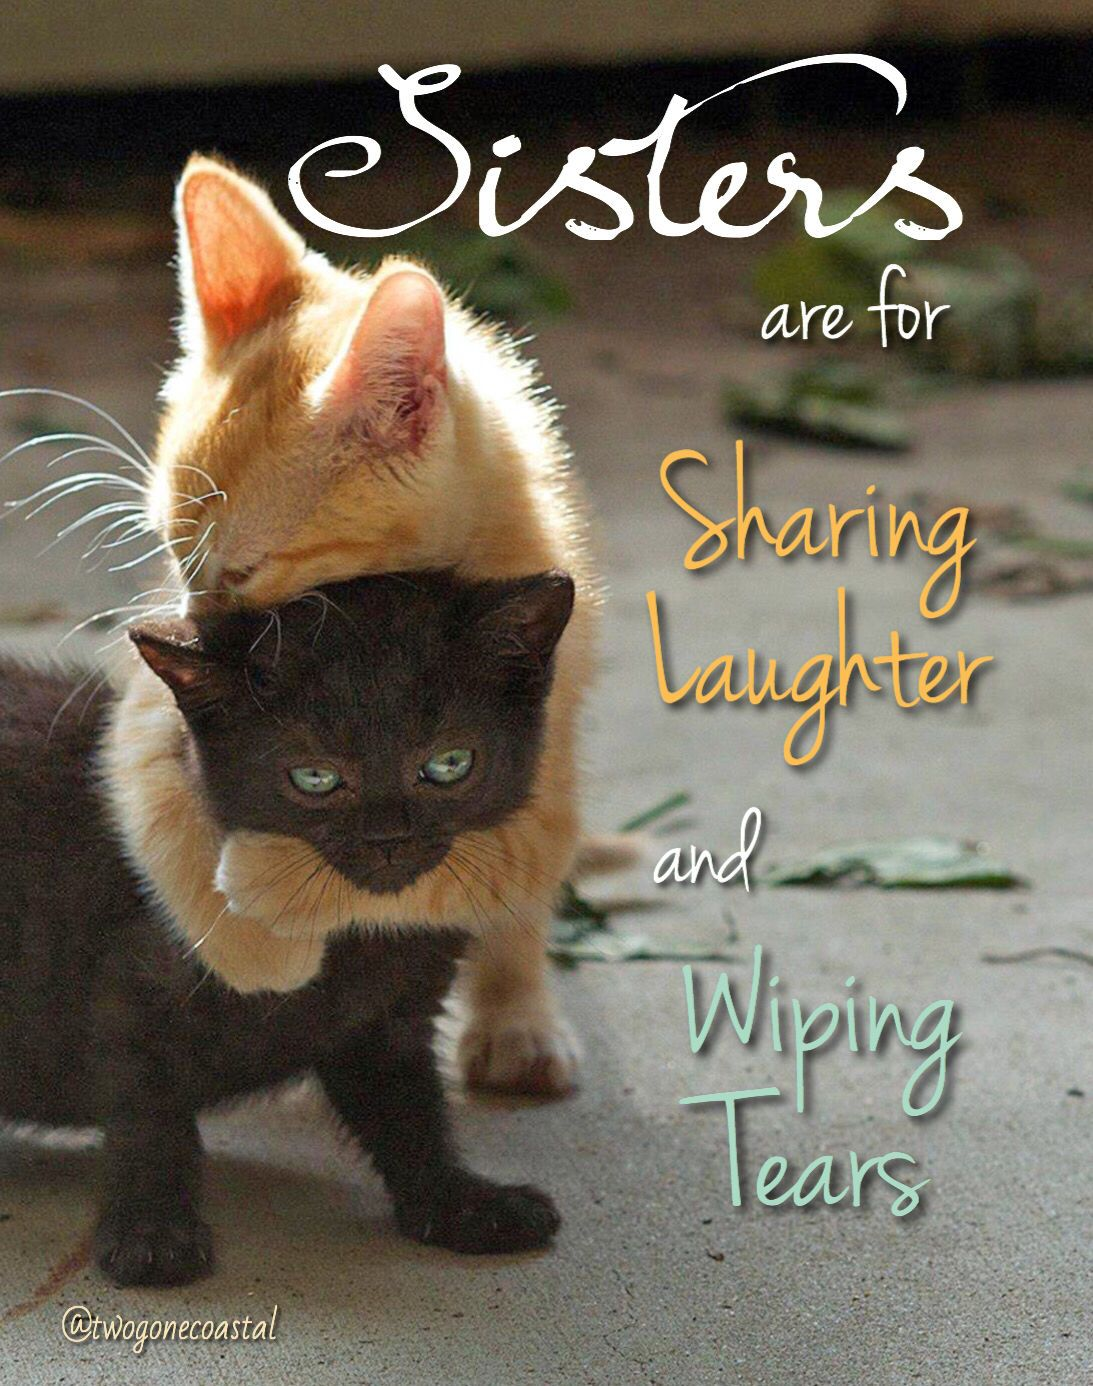 Sisters Are For Sharing Laughter sister sister quotes sister quotes     Sisters Are For Sharing Laughter sister sister quotes sister quotes and  sayings sister quote images